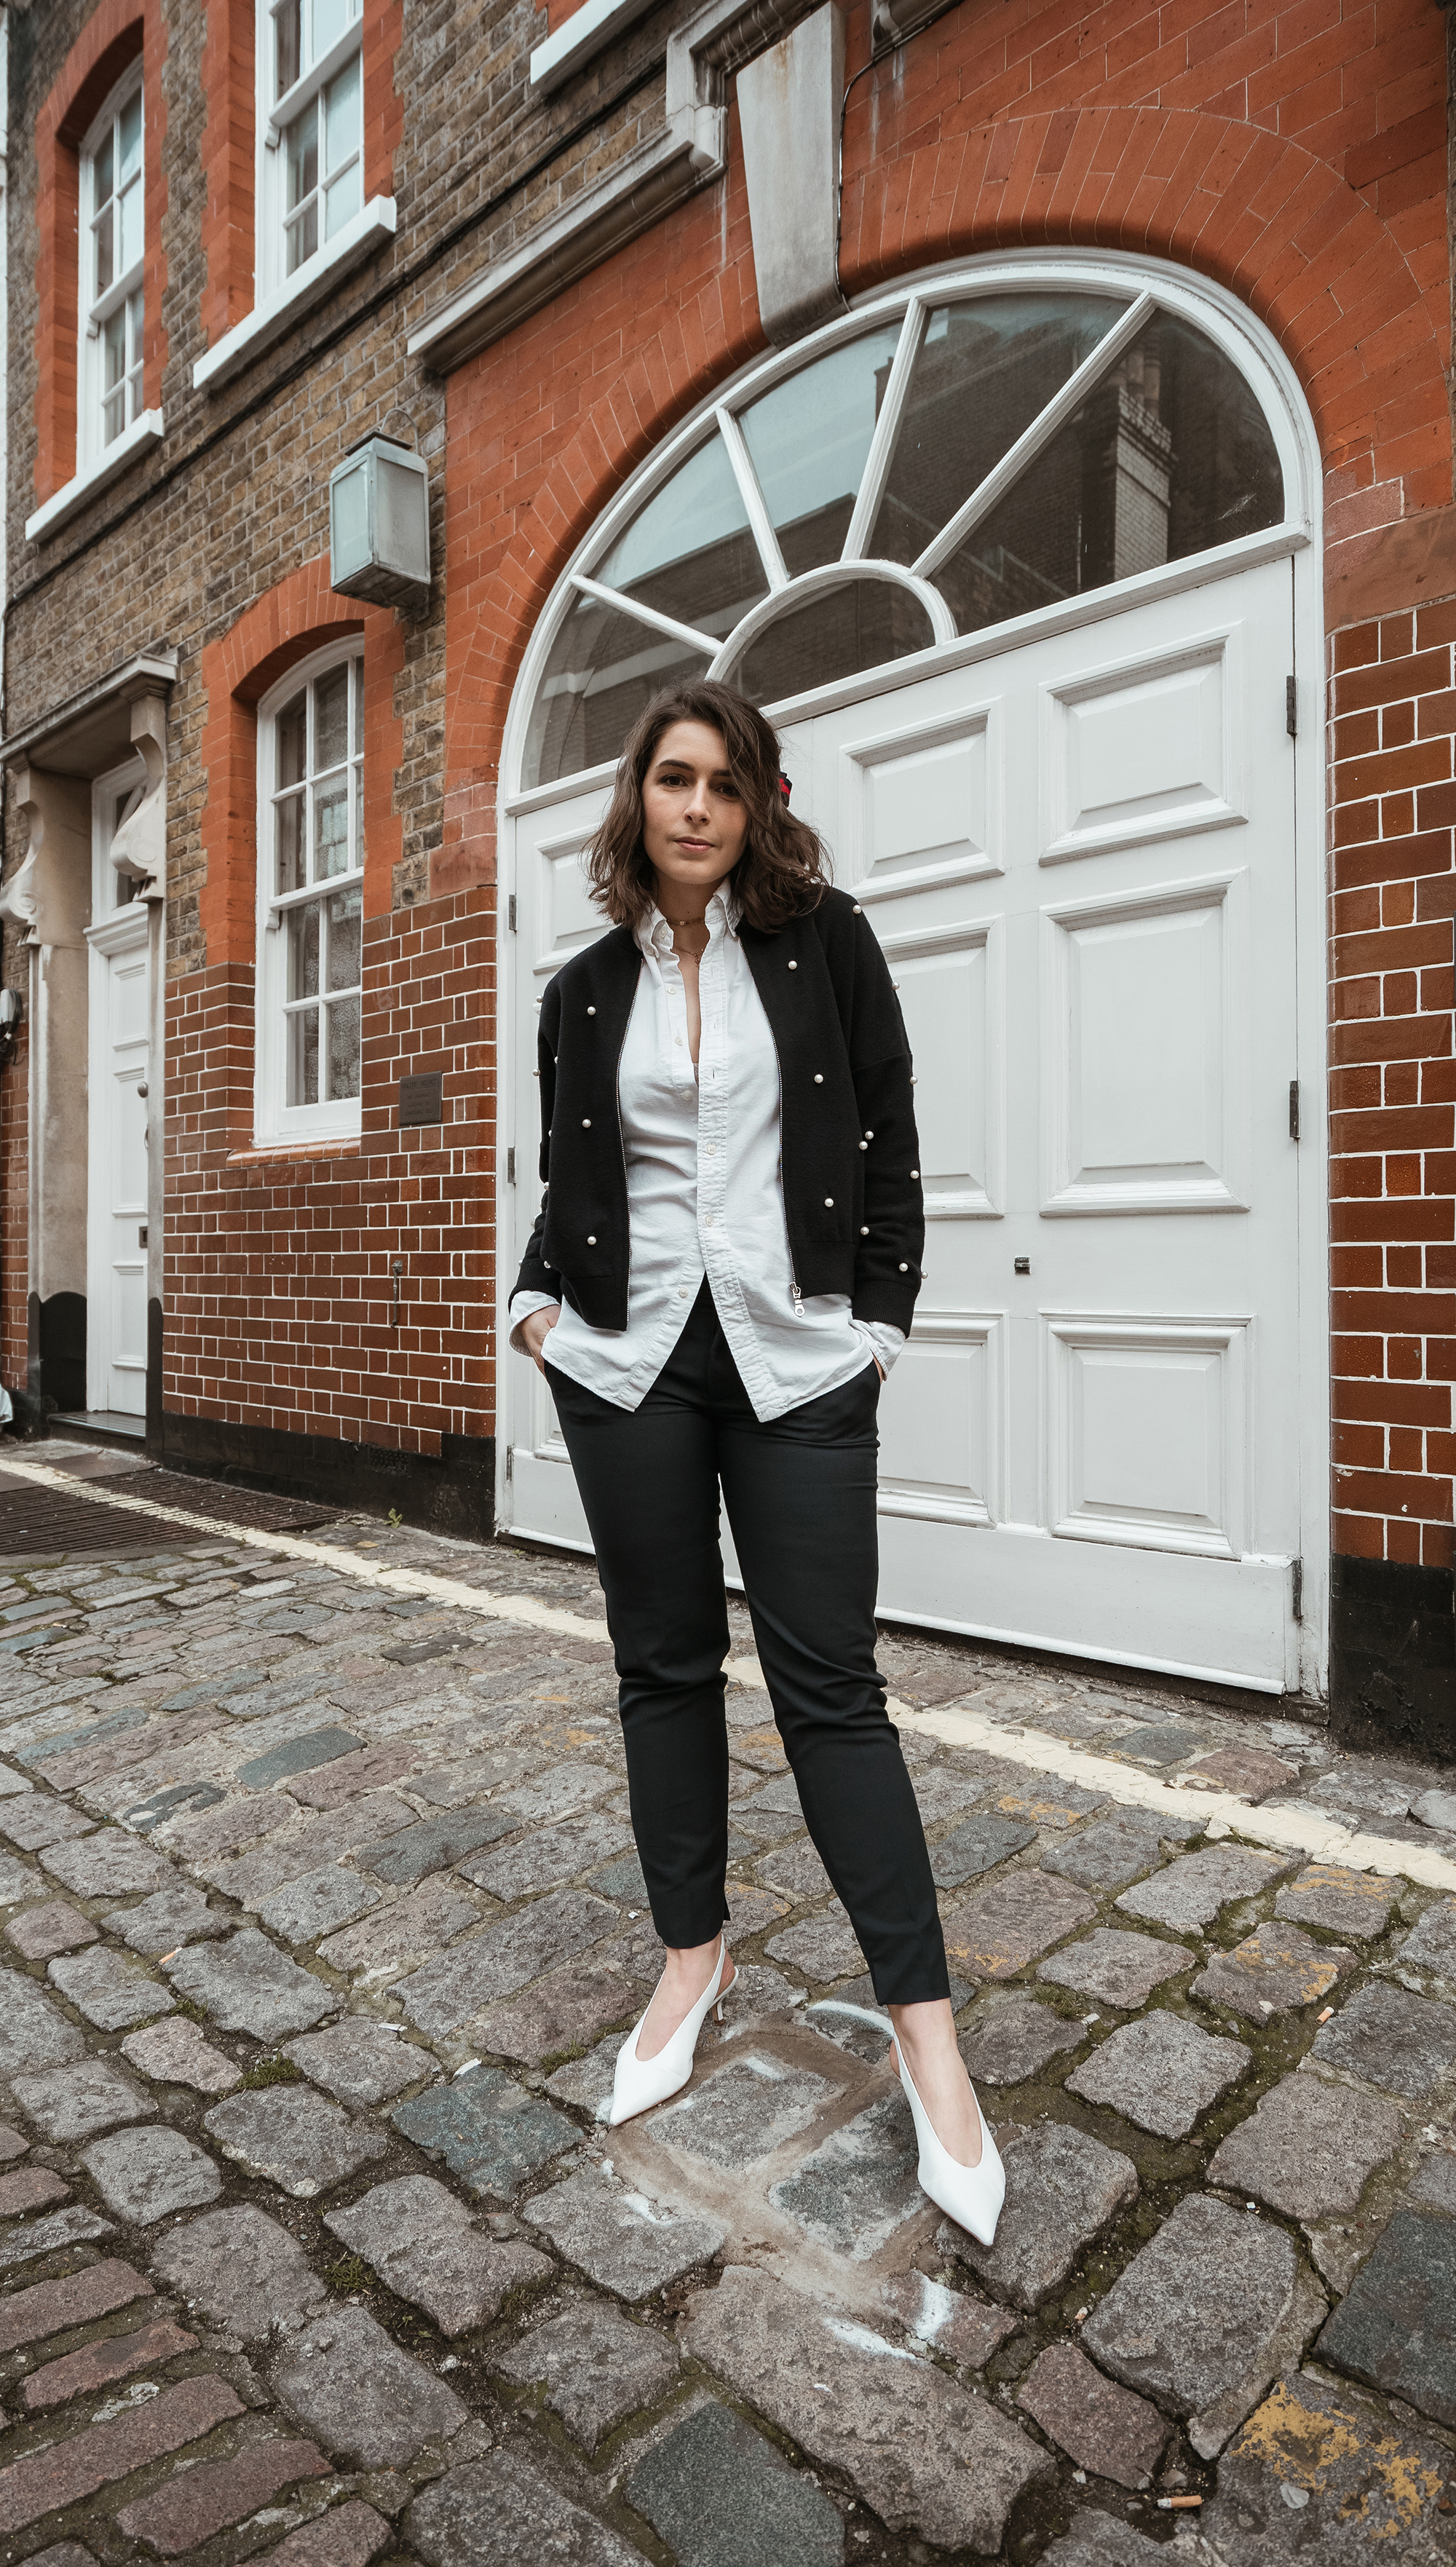 Classic Office Look with a Twist